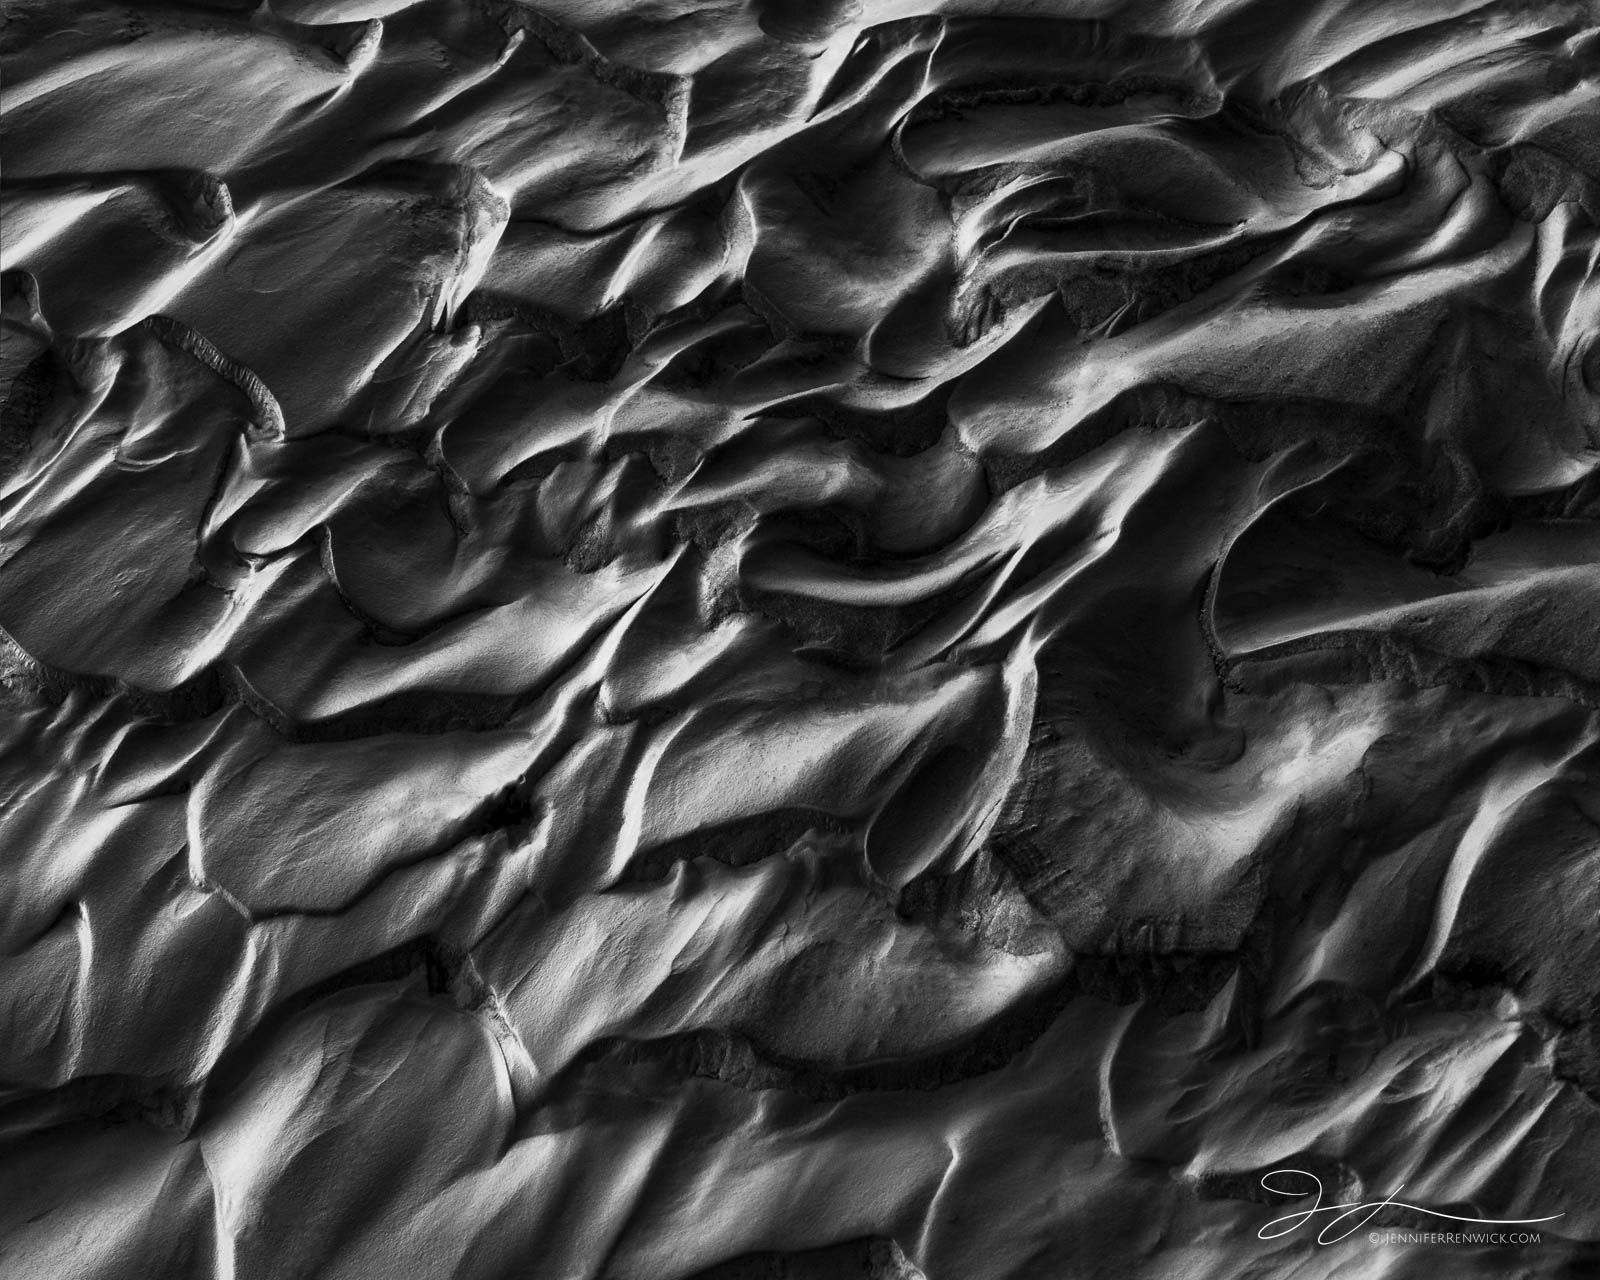 Death Valley National Park, abstract photography, black and white, monochrome, textures, patterns, mud, California, Mojave Desert, ripples, playa, photo